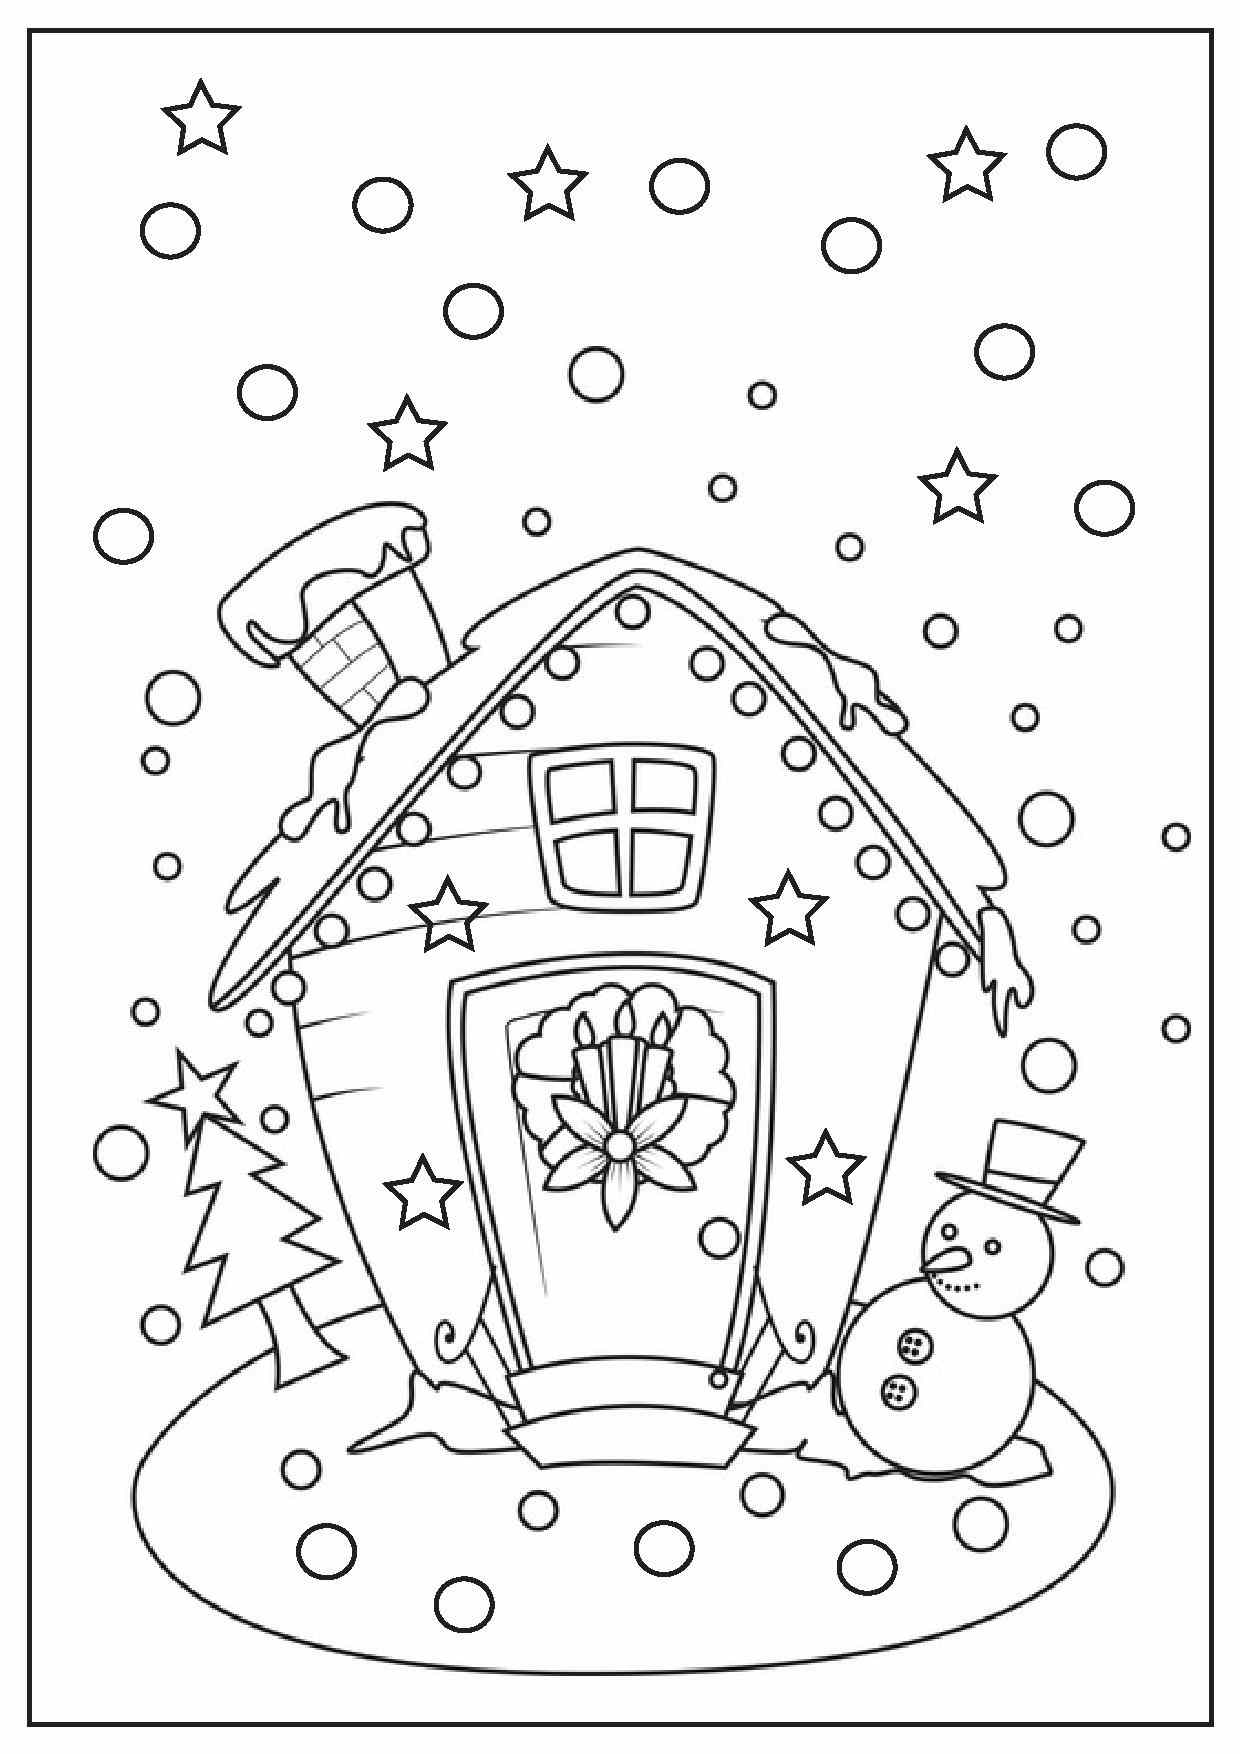 Christmas Drawing To Color at GetDrawings.com | Free for personal ...